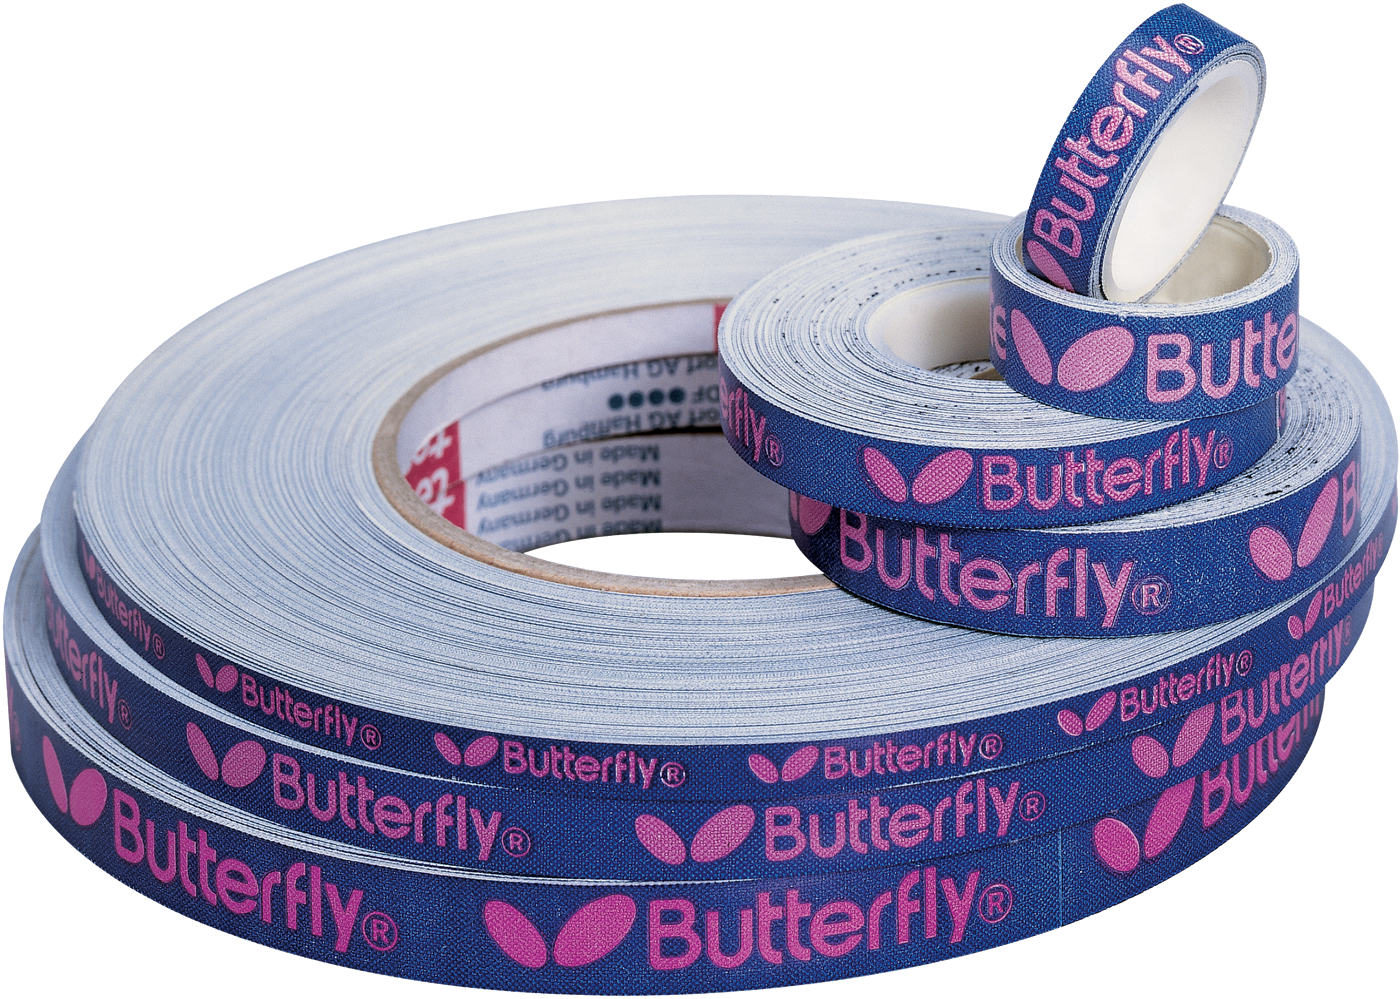 Buuterfly -edge type 12mm x 10M